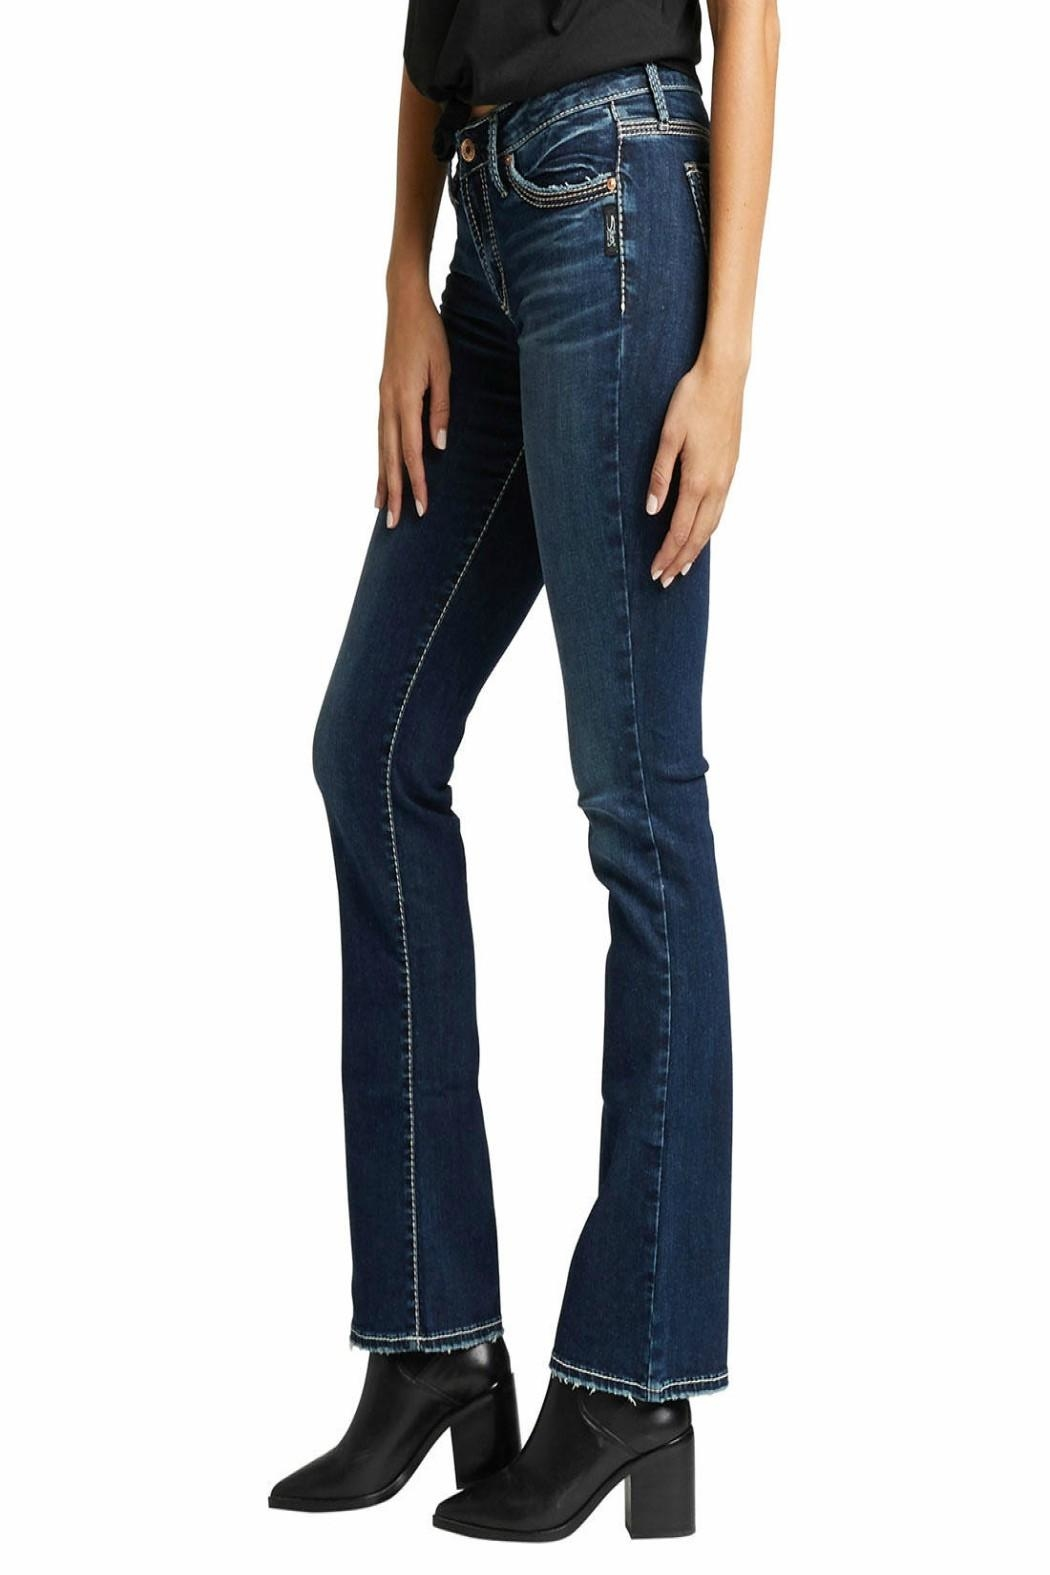 Silver Jeans Co. Suki Slim-Boot Jeans - Side Cropped Image